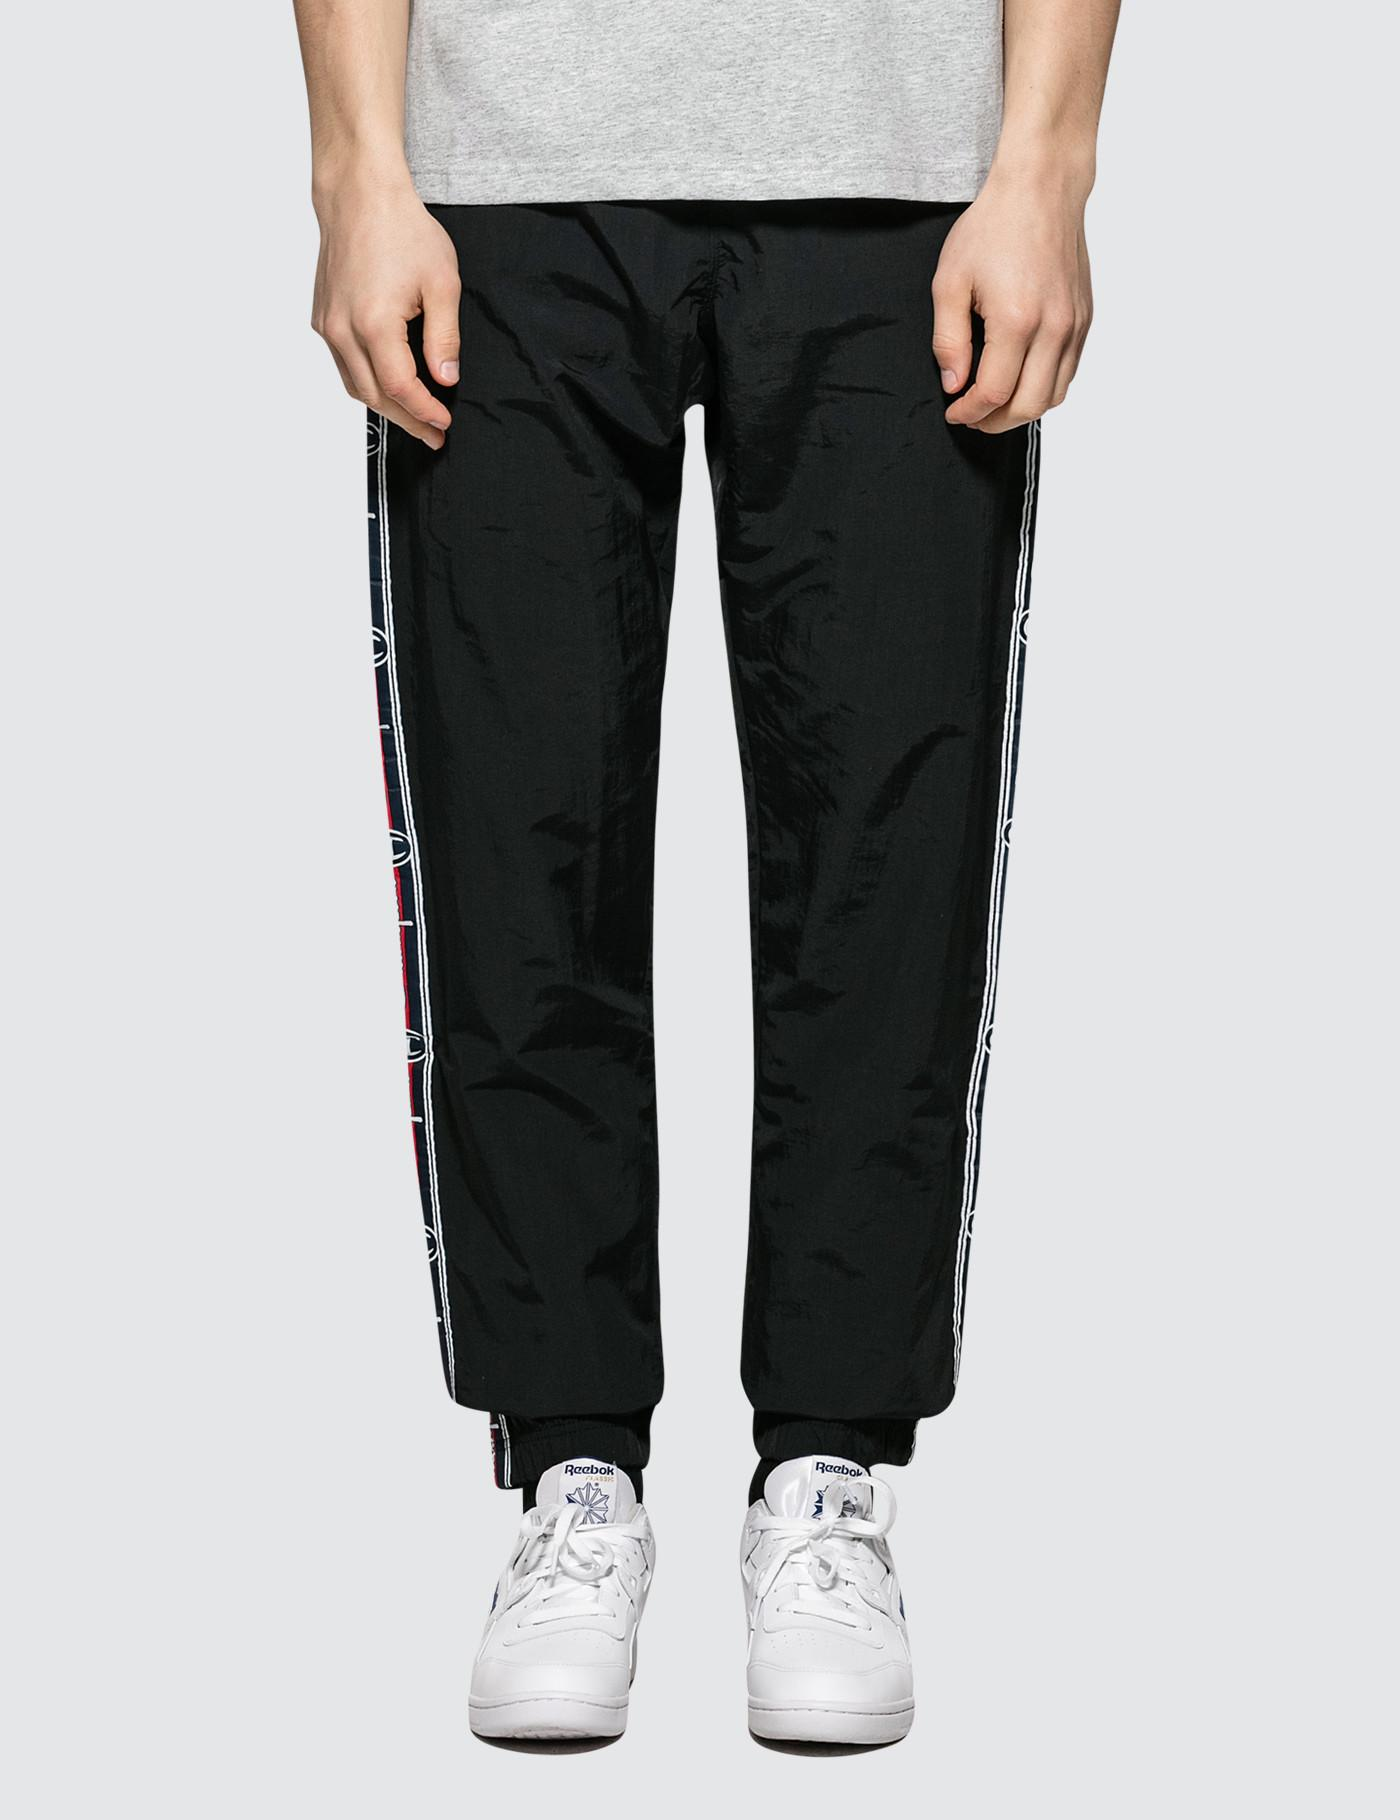 3685ea7eceb0 Lyst - Champion Track Pants in Black for Men